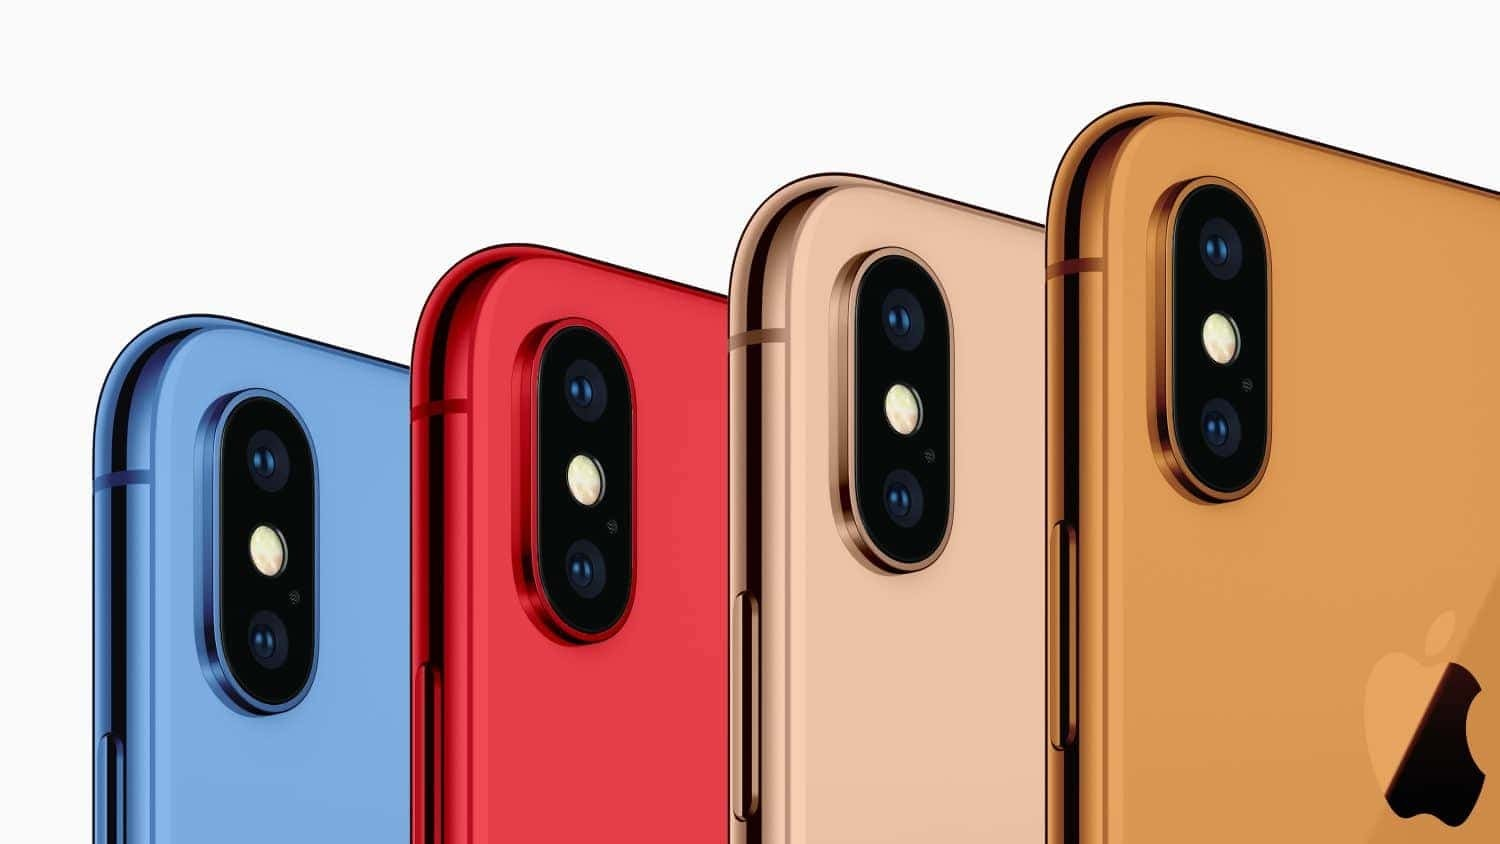 [Stat Stories] The iPhone Rules 2019 and Q4 2019, as Xiaomi Arrives!